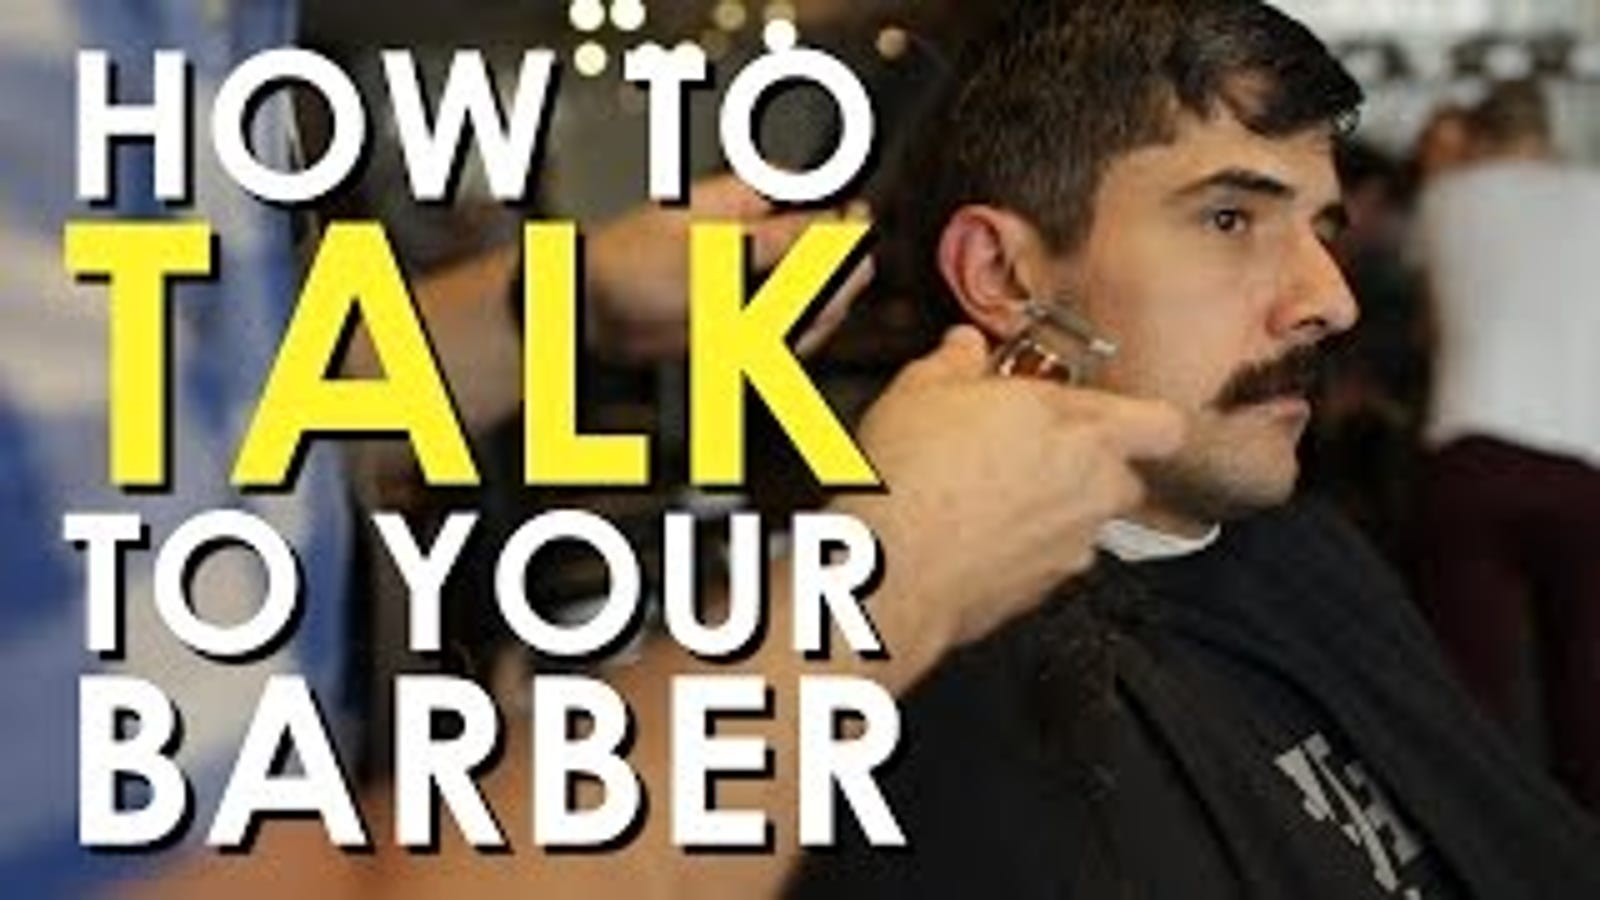 What To Say To The Barber To Get The Perfect Haircut